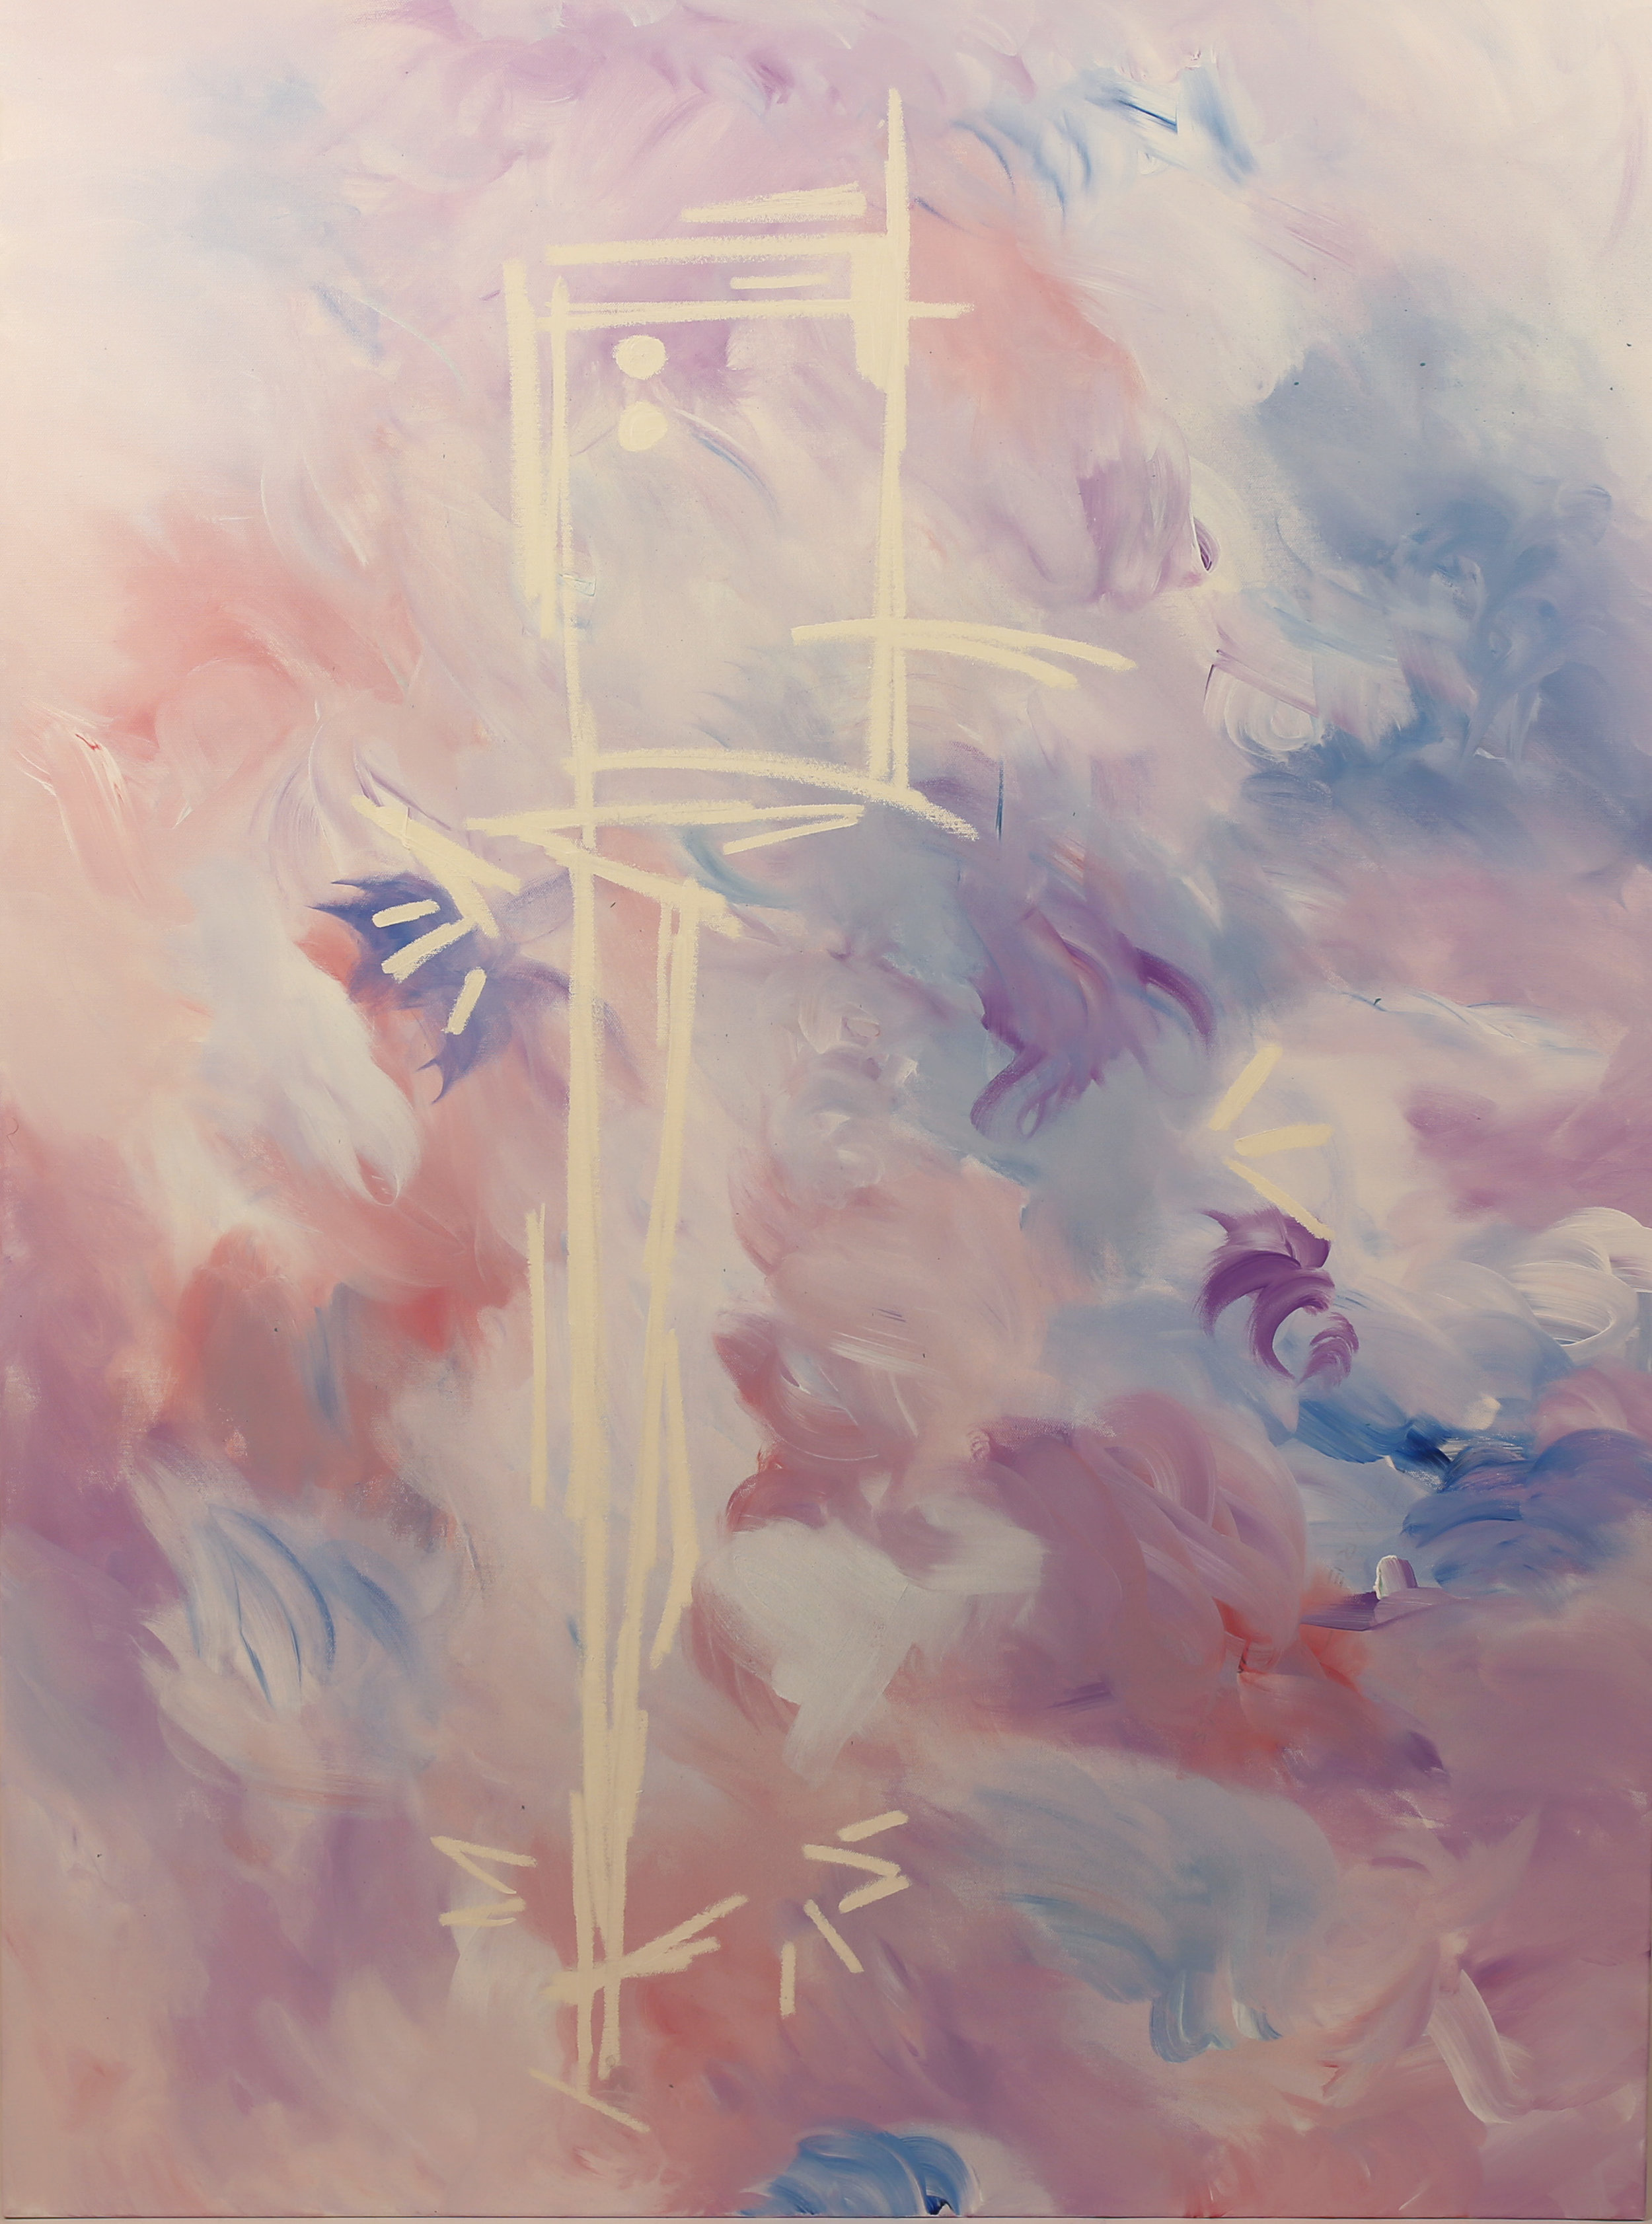 Machine gun rococo.  Acrylic, spray paint, oil on canvas. 48 x 36 x 1 ½ in. Executed in 2018.